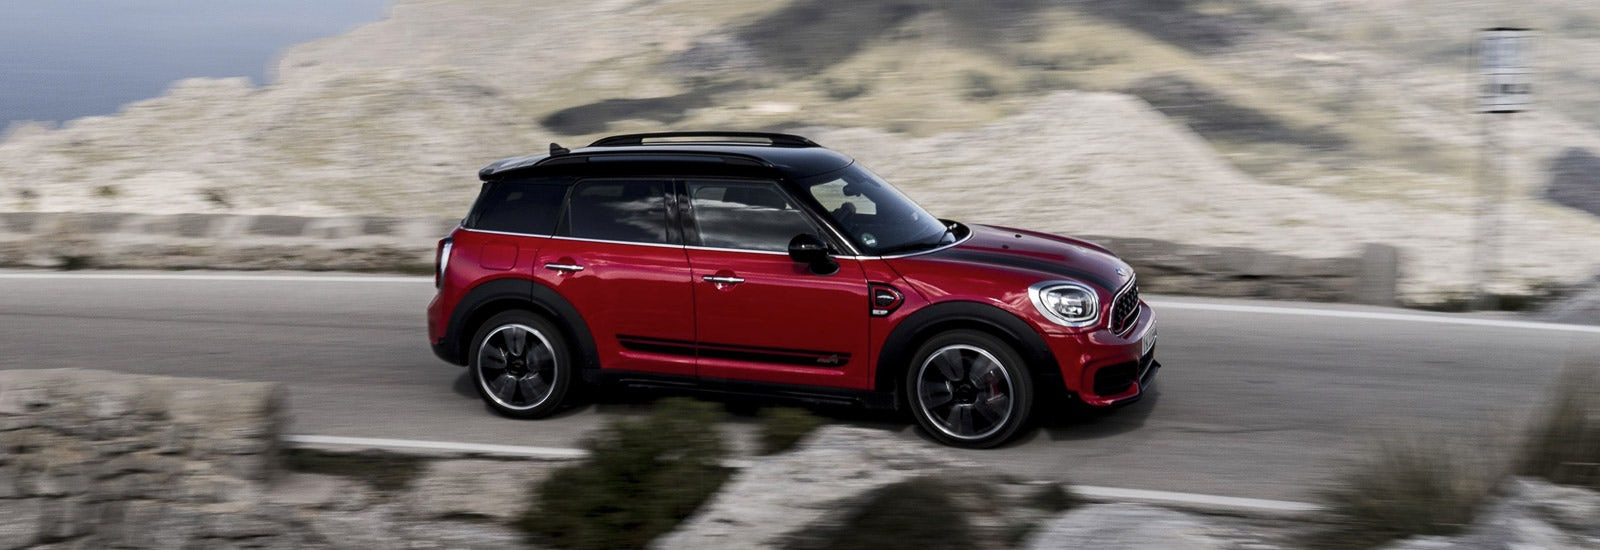 2017 Mini Countryman Jcw Engine And Driving